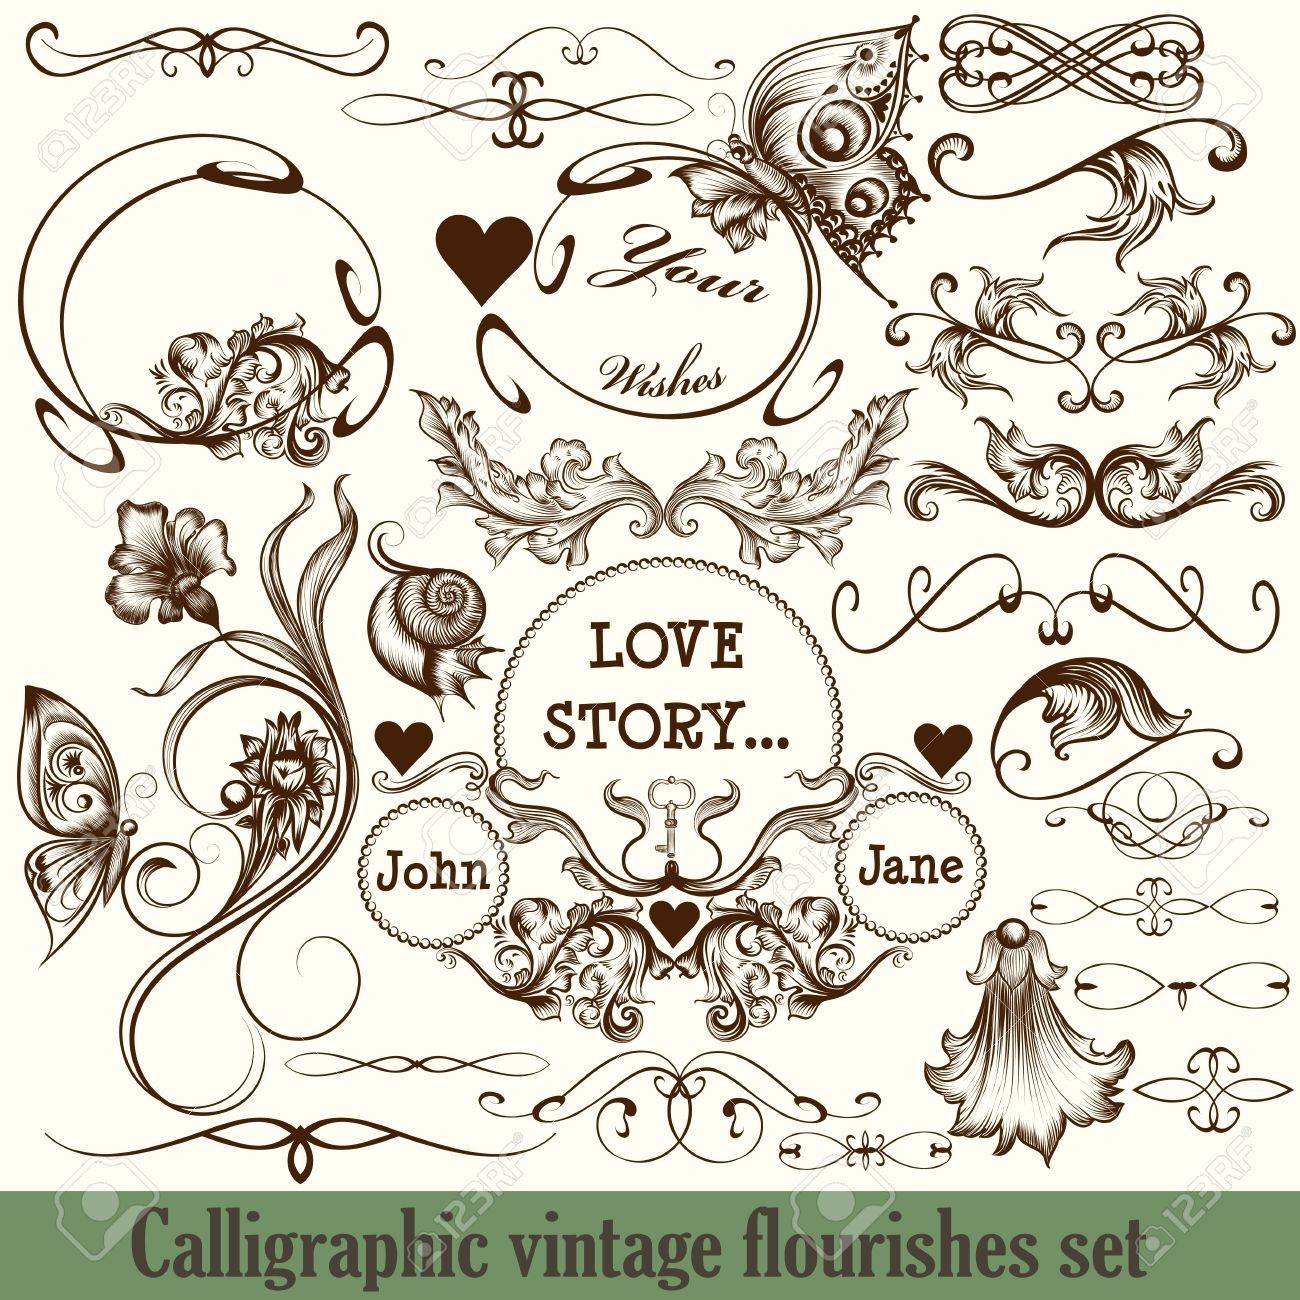 set of vector calligraphic flourishes in vintage style engraved